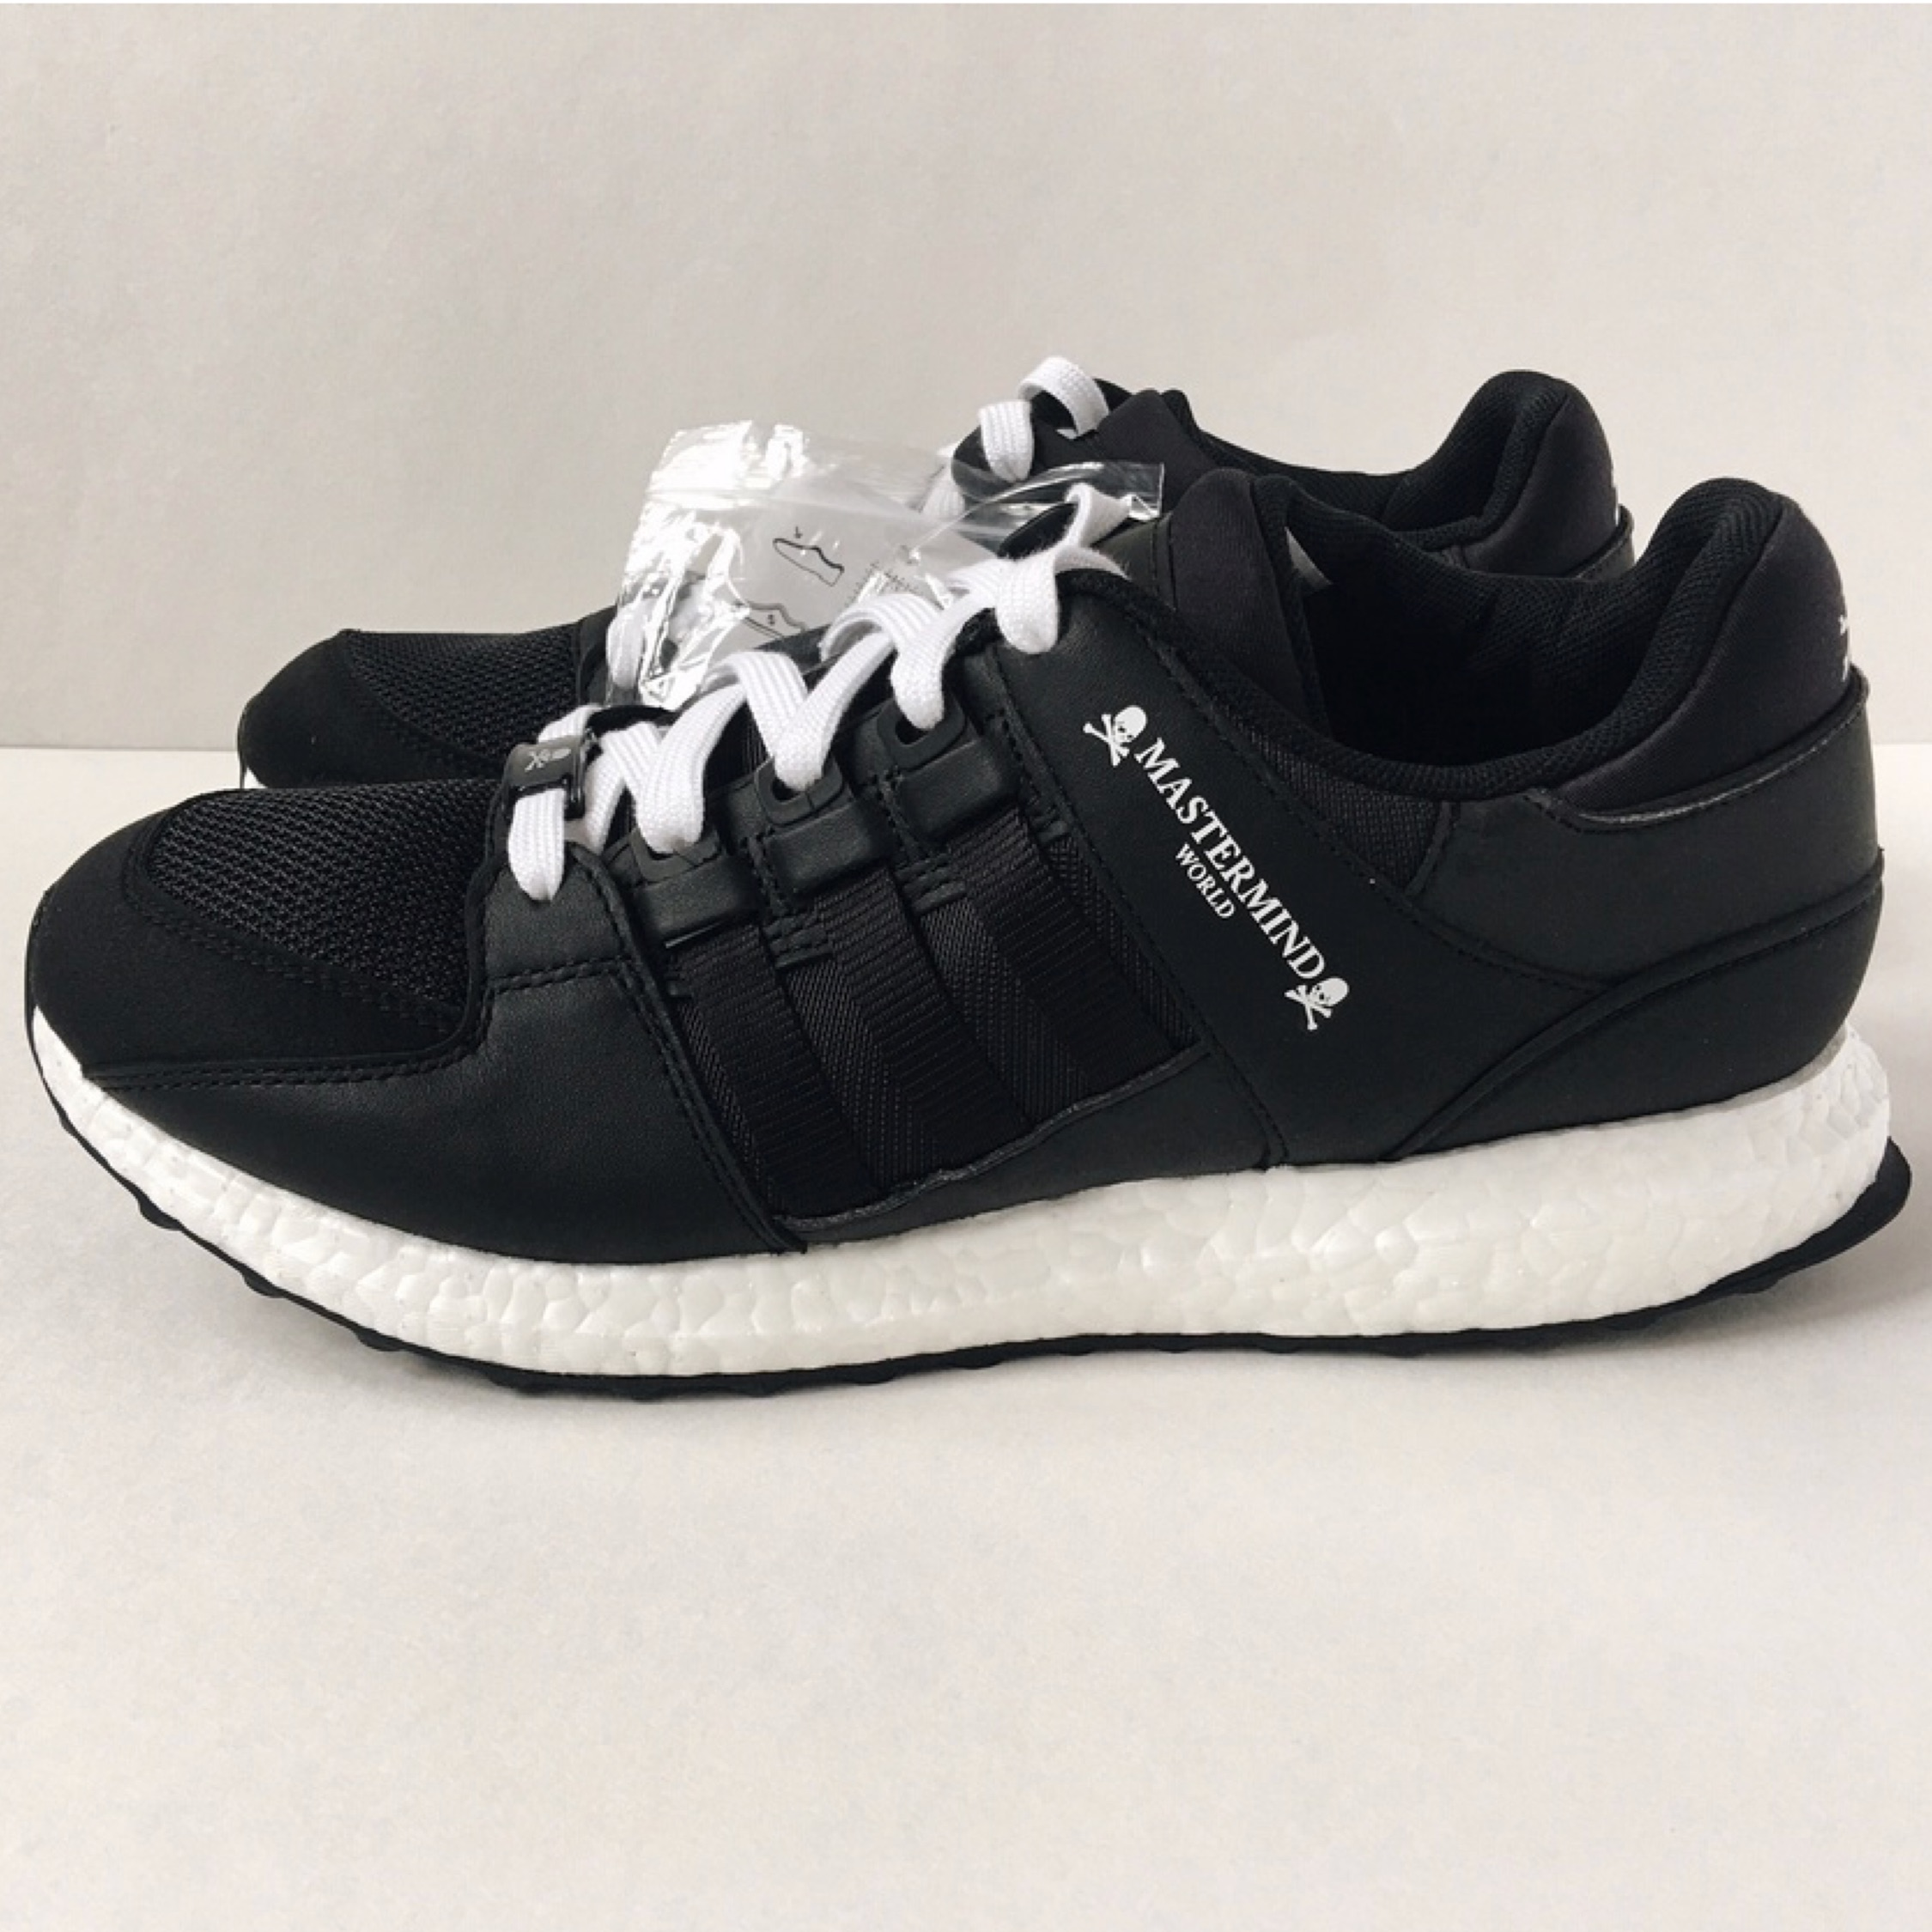 best sneakers b6430 330c0 Adidas X Mastermind Japan Eqt Support